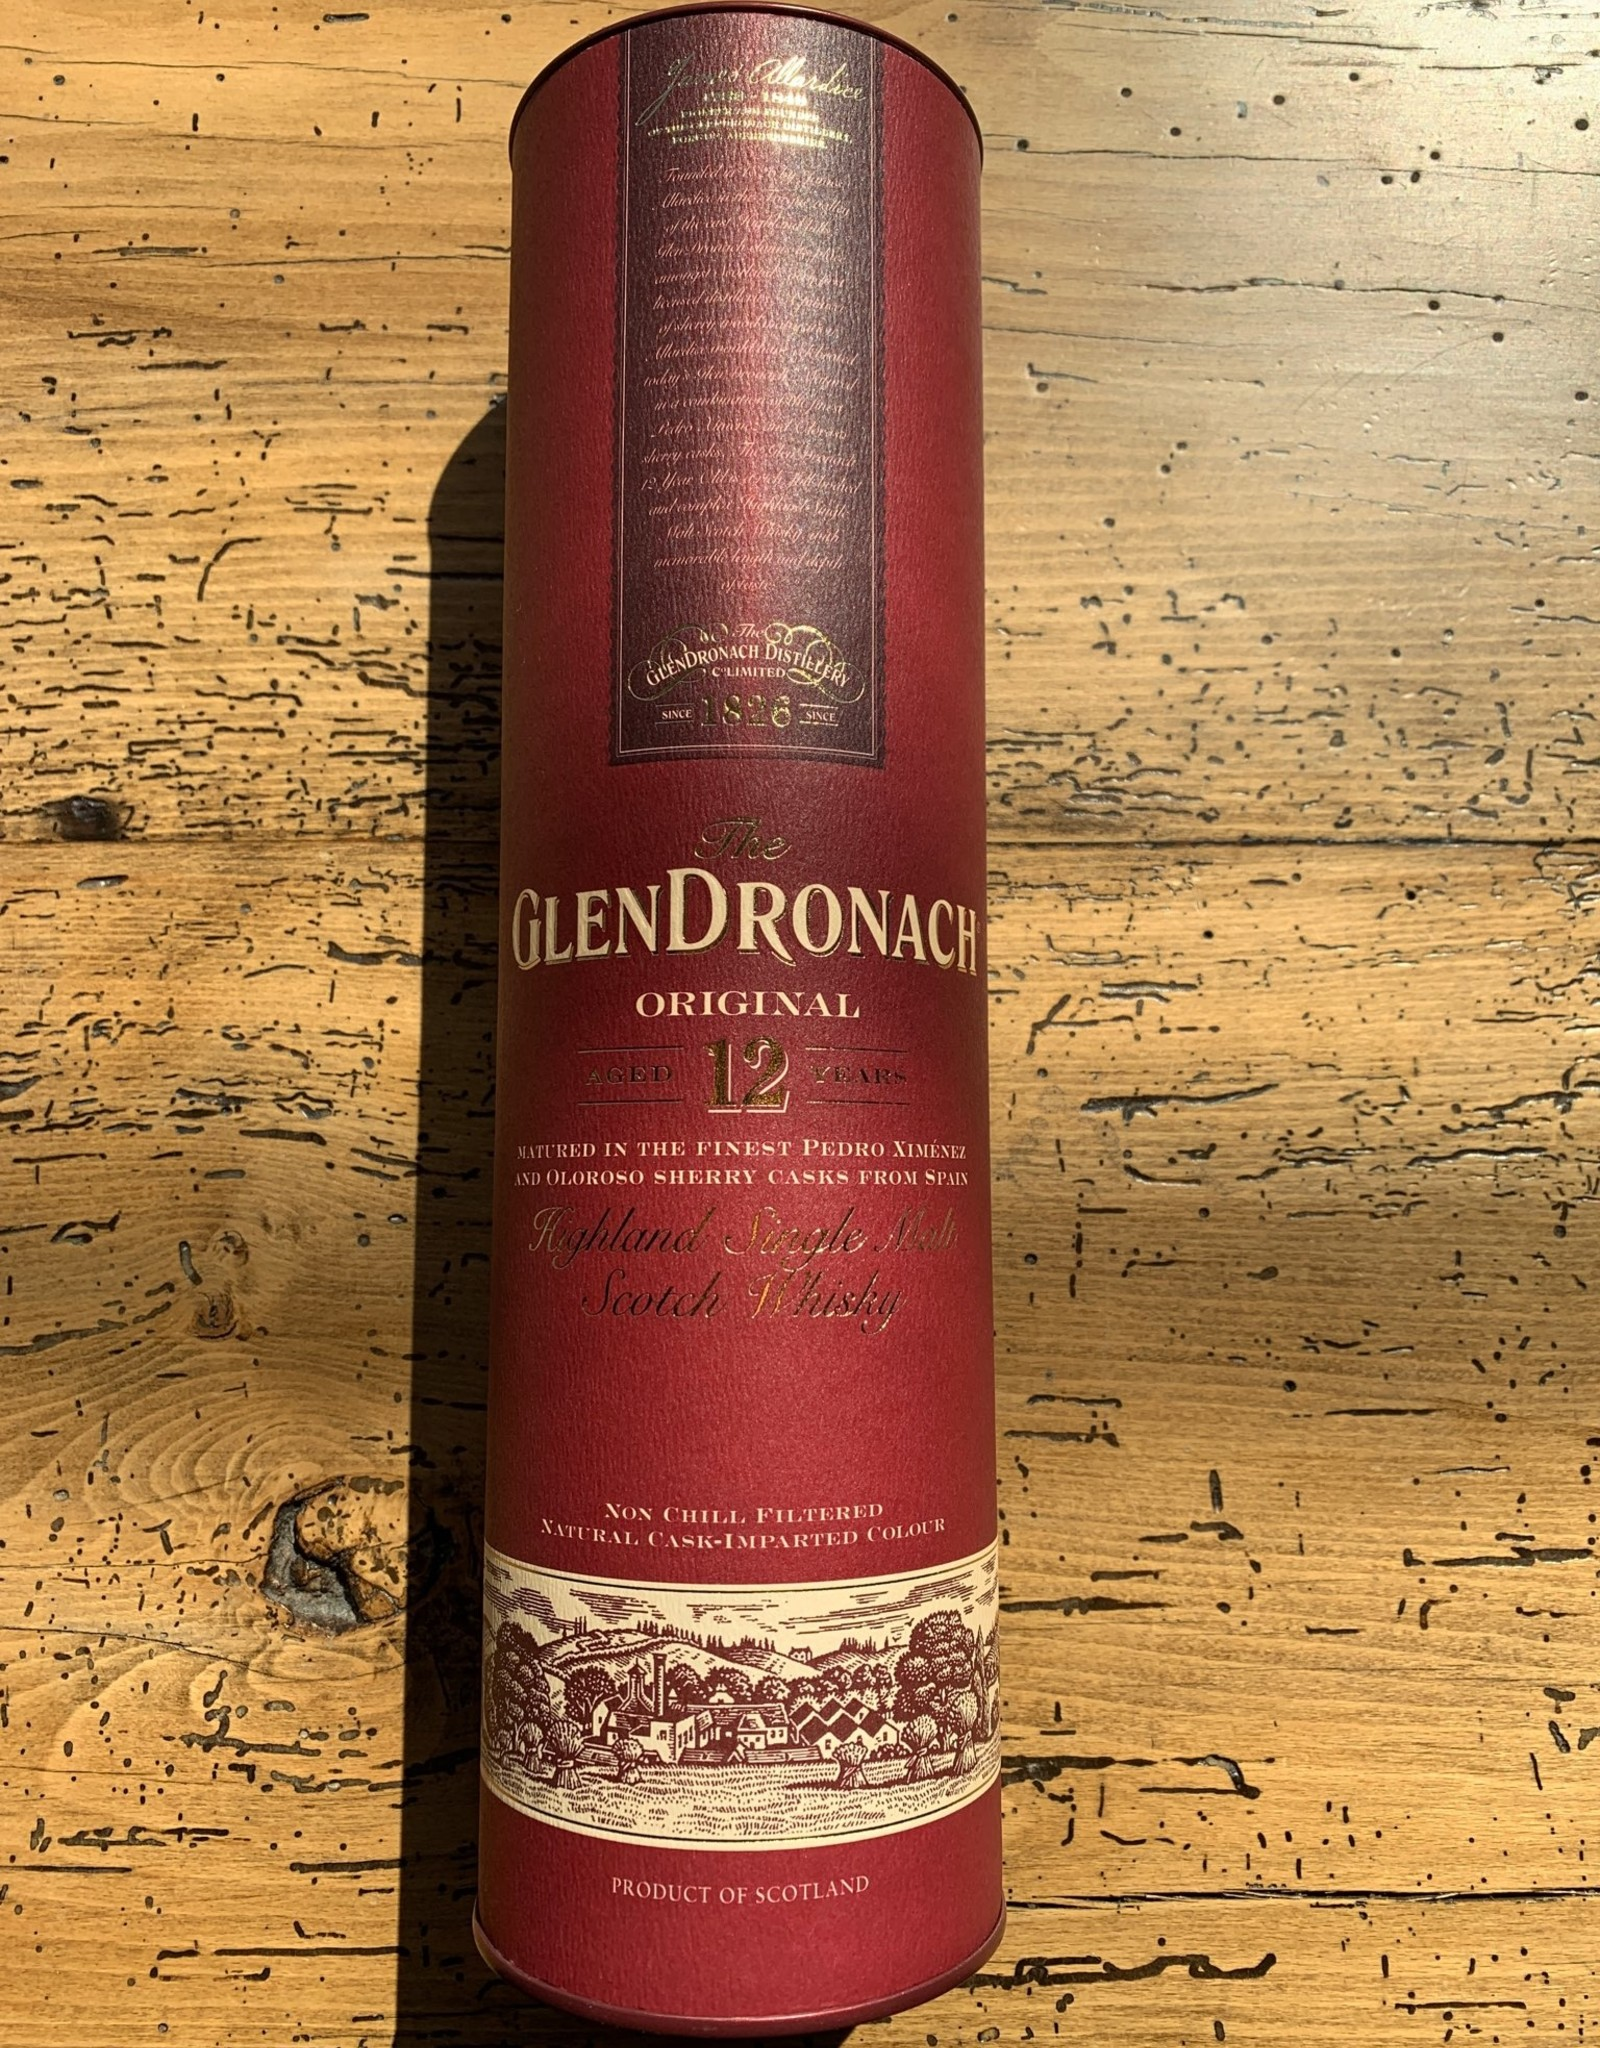 Glendronach 12 yr Highland Single Malt